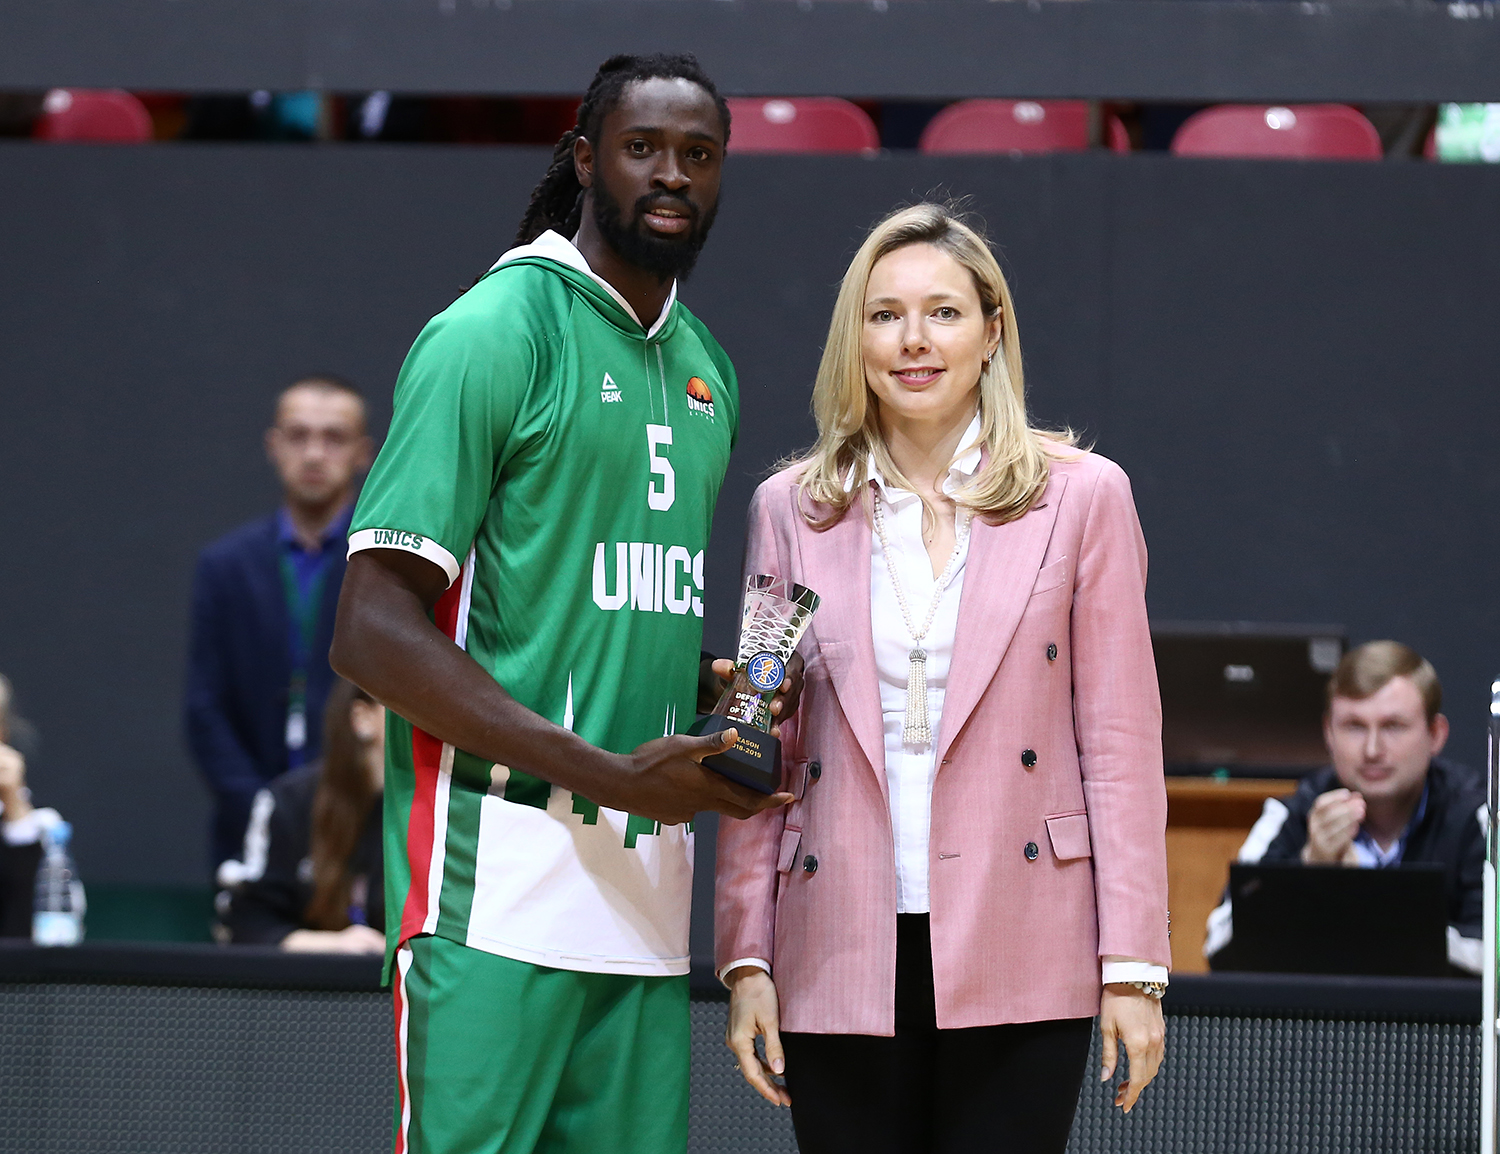 Maurice Ndour Wins Defensive Player Of The Year